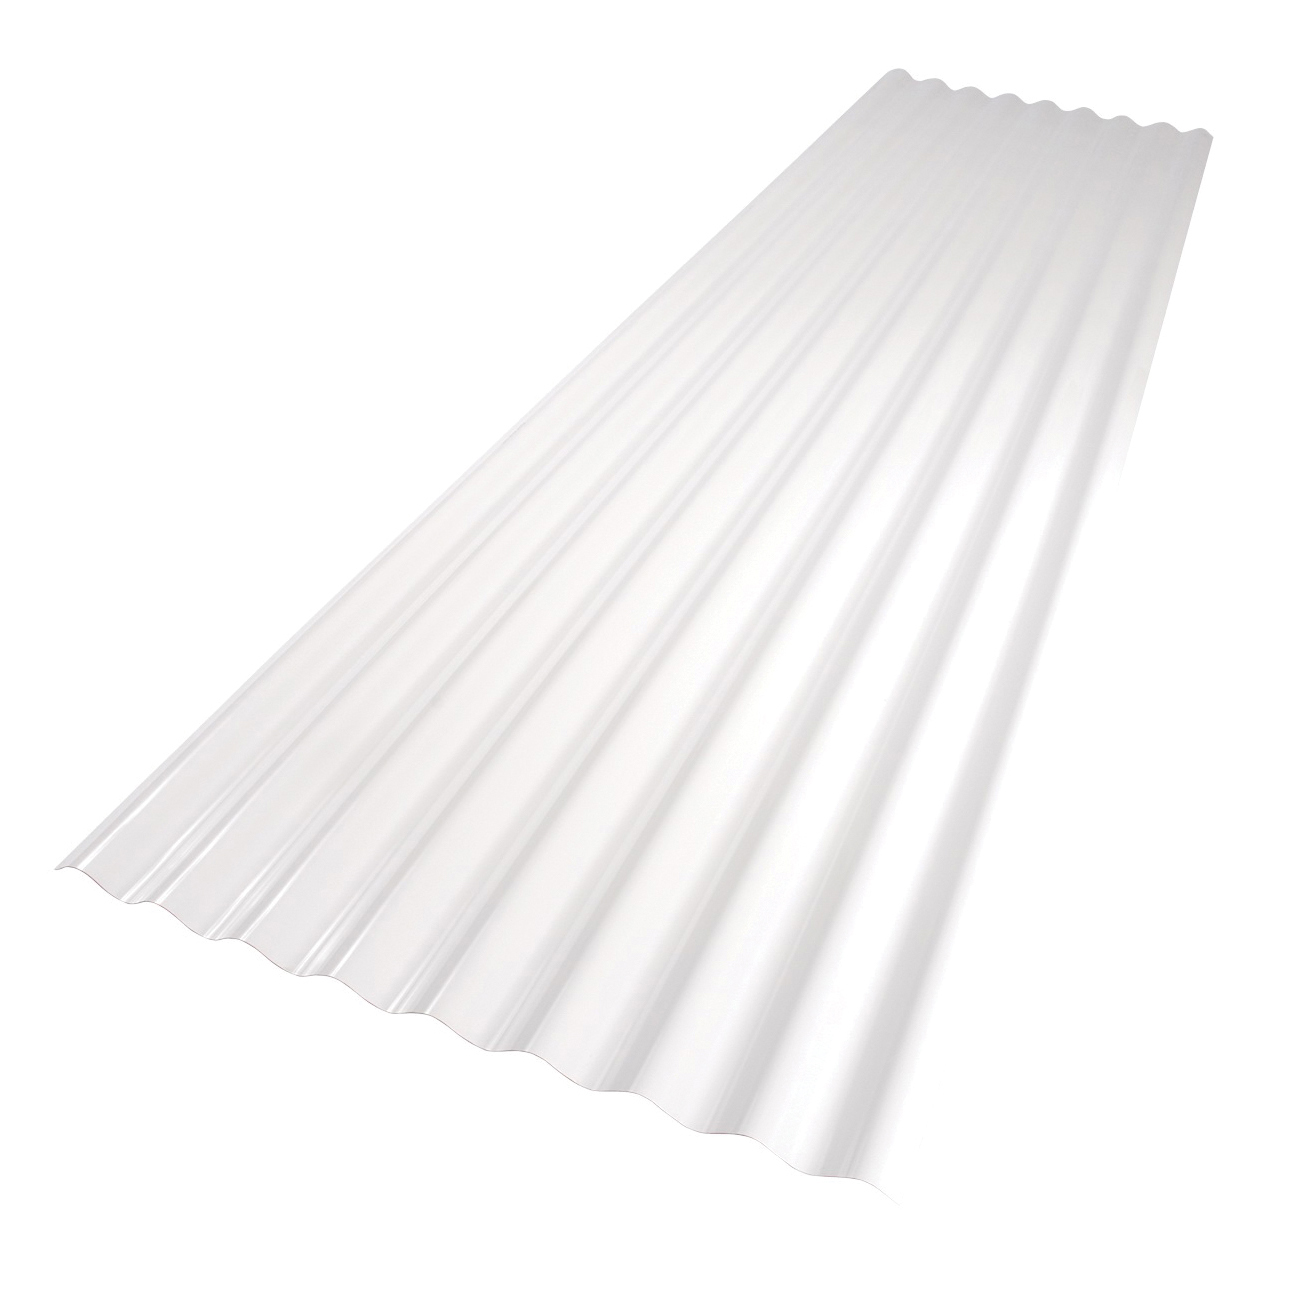 Picture of Palruf 101336 Corrugated Roofing Panel, 8 ft L, 26 in W, PVC, White